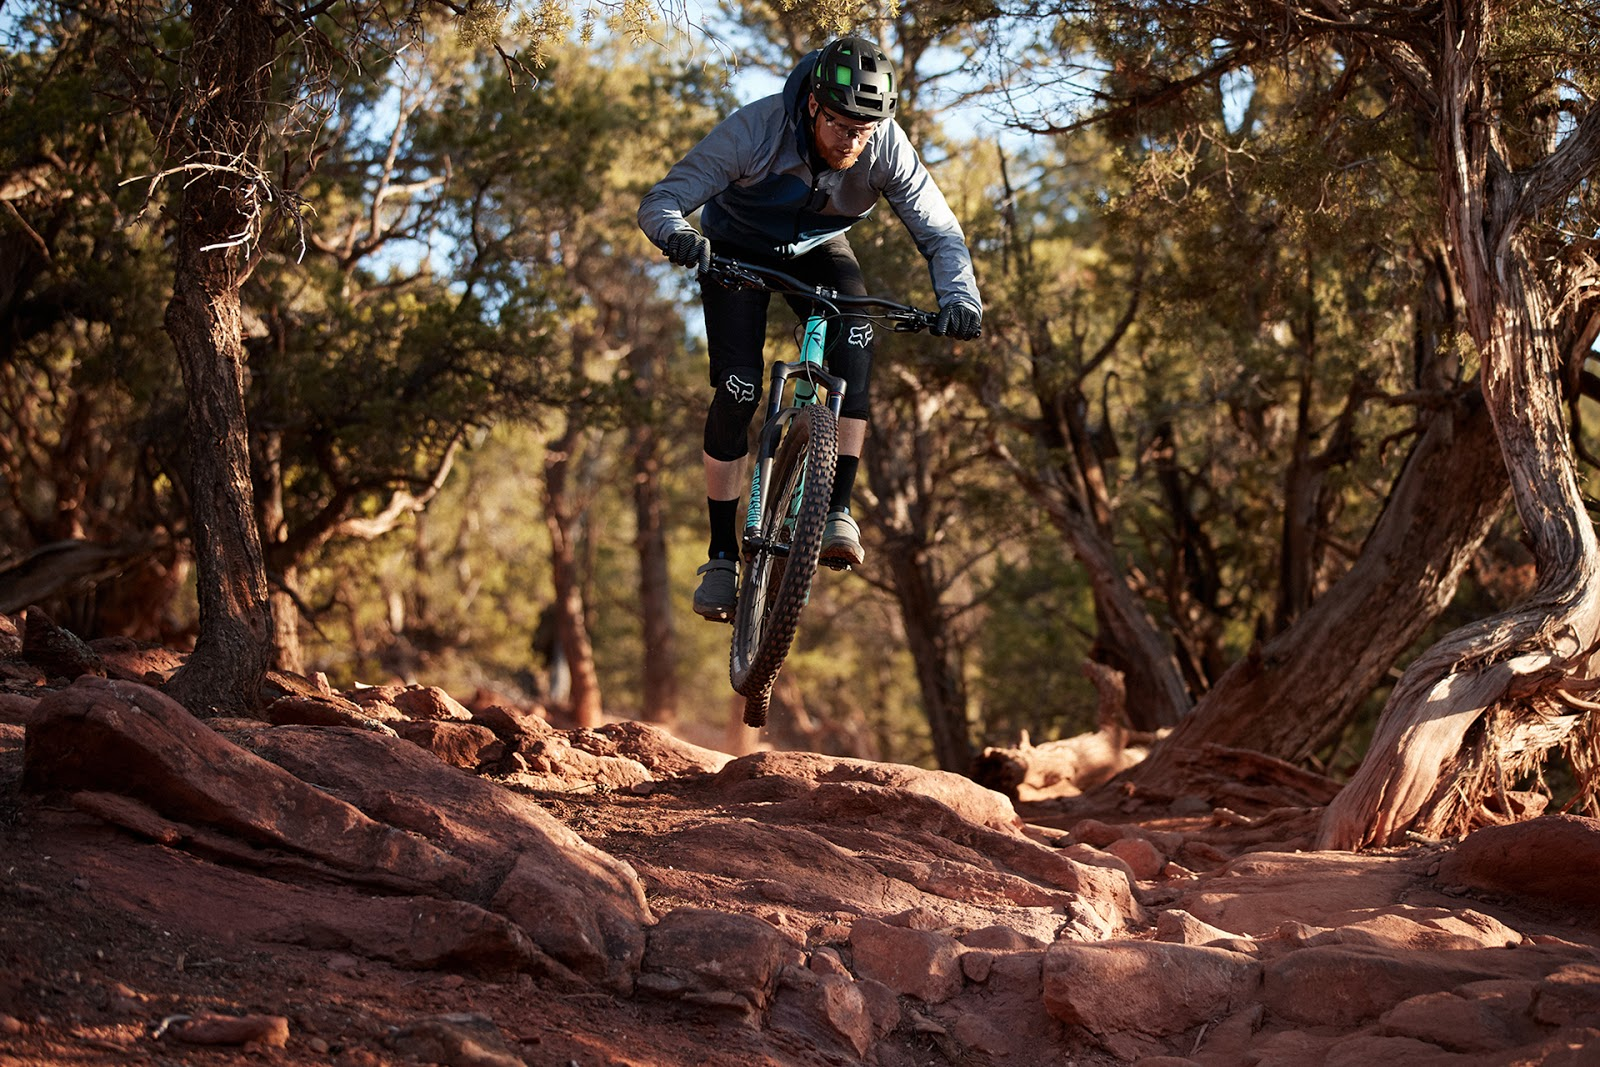 GORE® Wear launch two new mountain bike jackets fit for puddles, splashes and mud spray